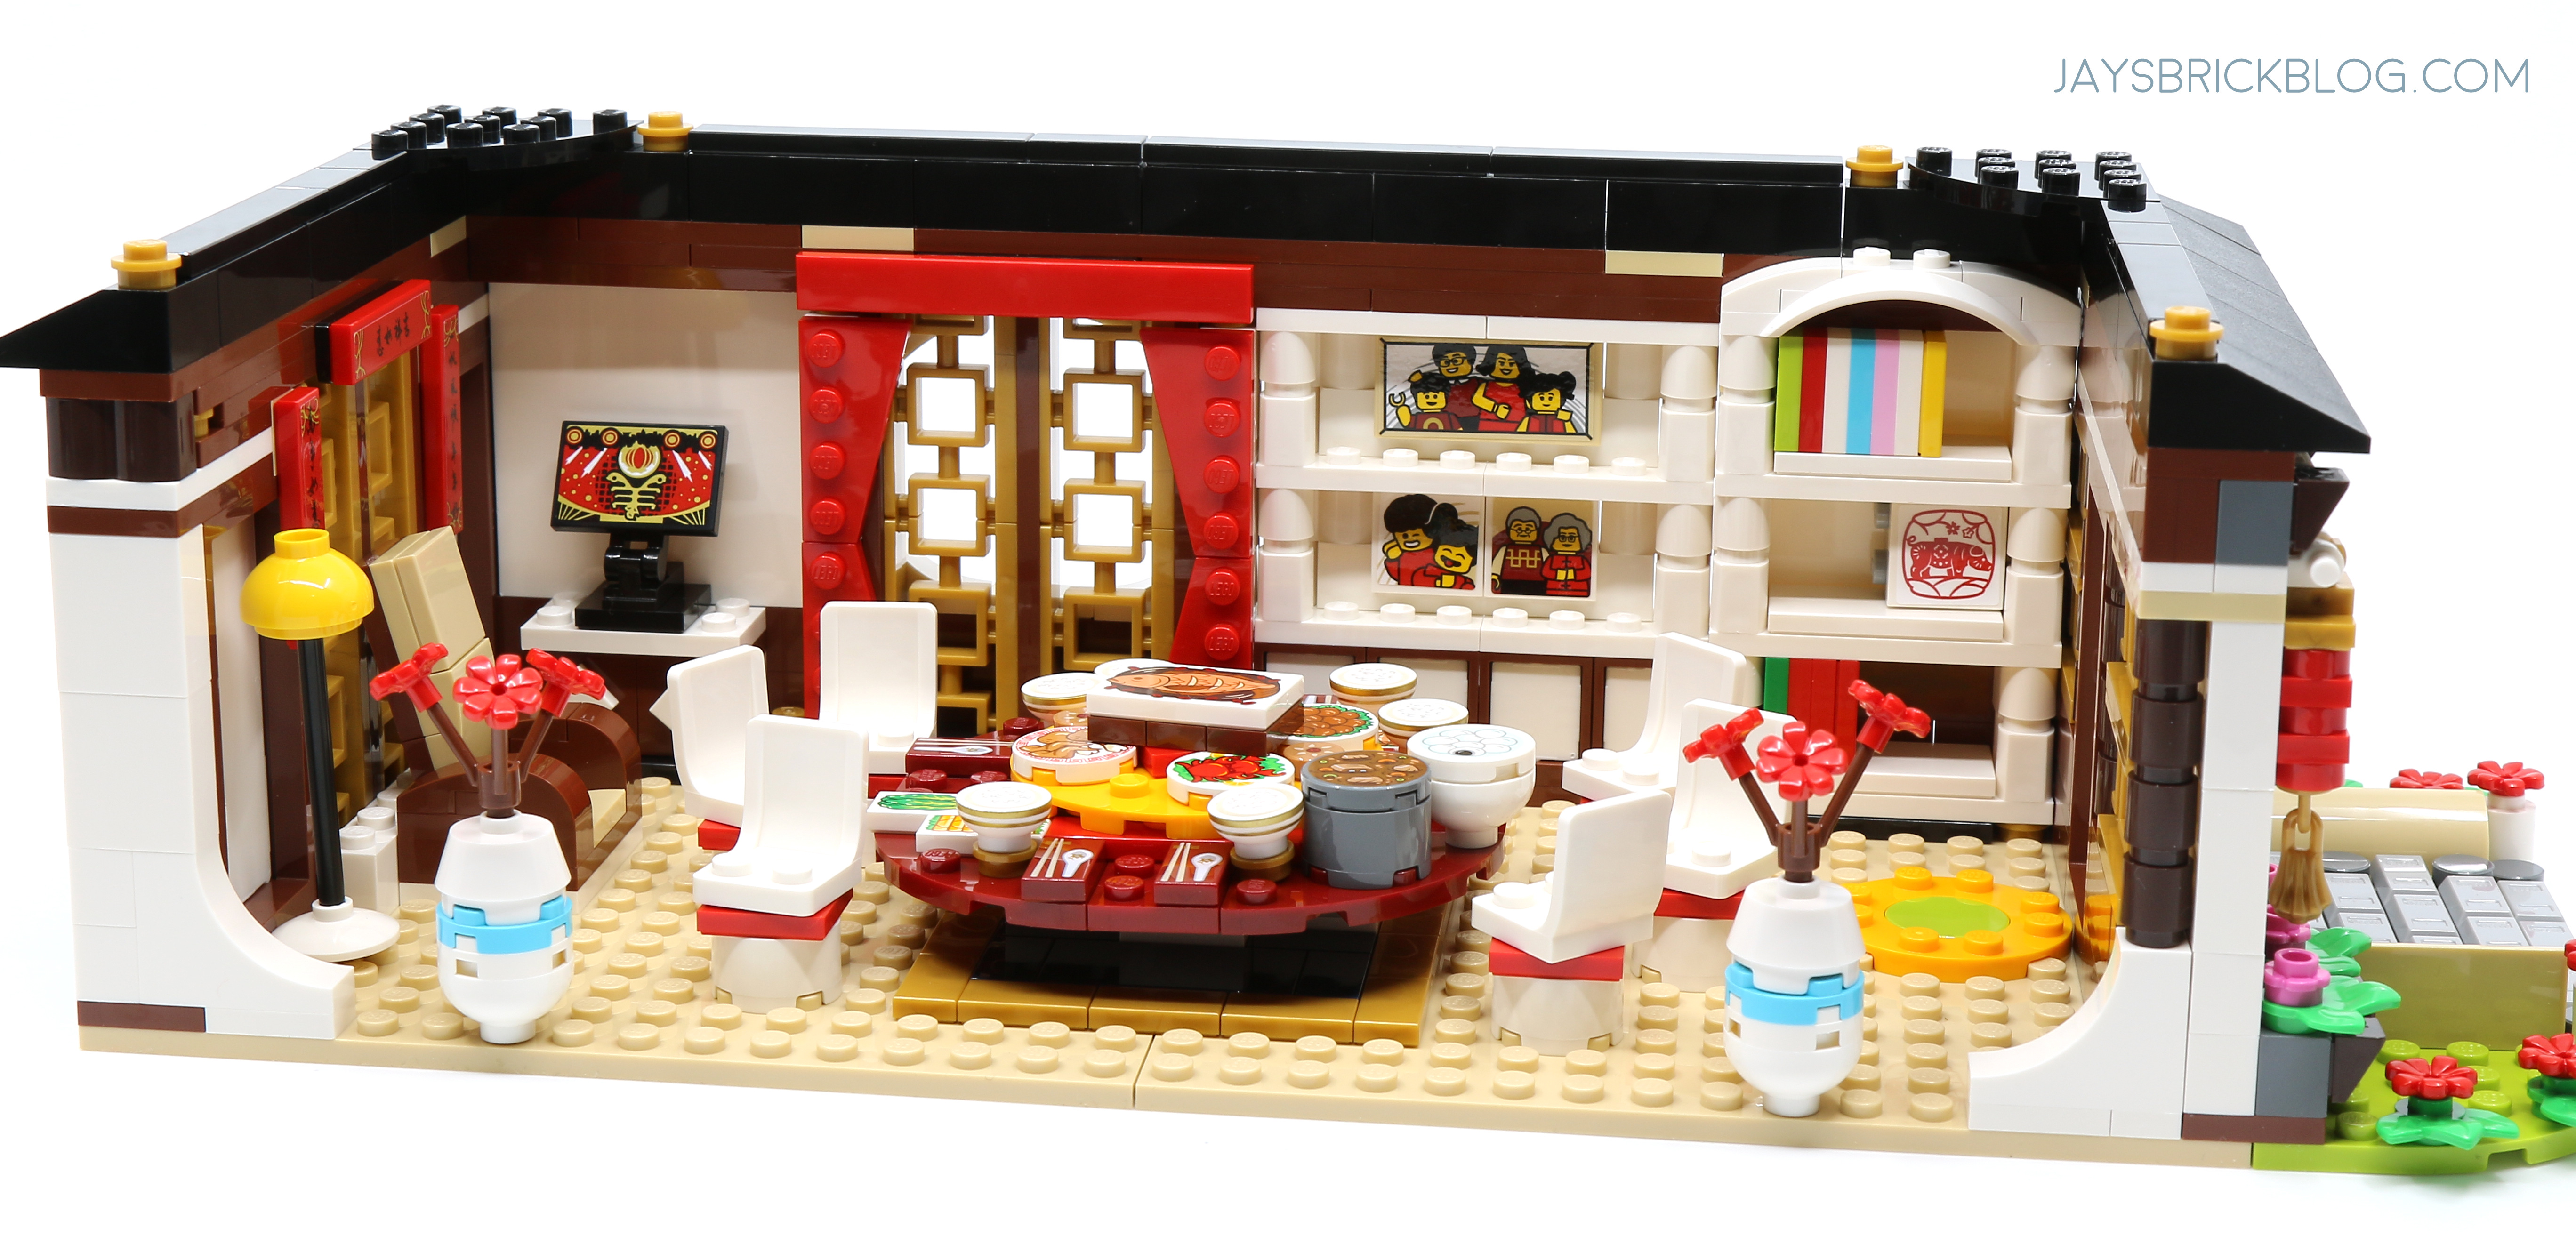 Review: LEGO 80101 Chinese New Year's Eve Dinner – Jay's Brick Blog